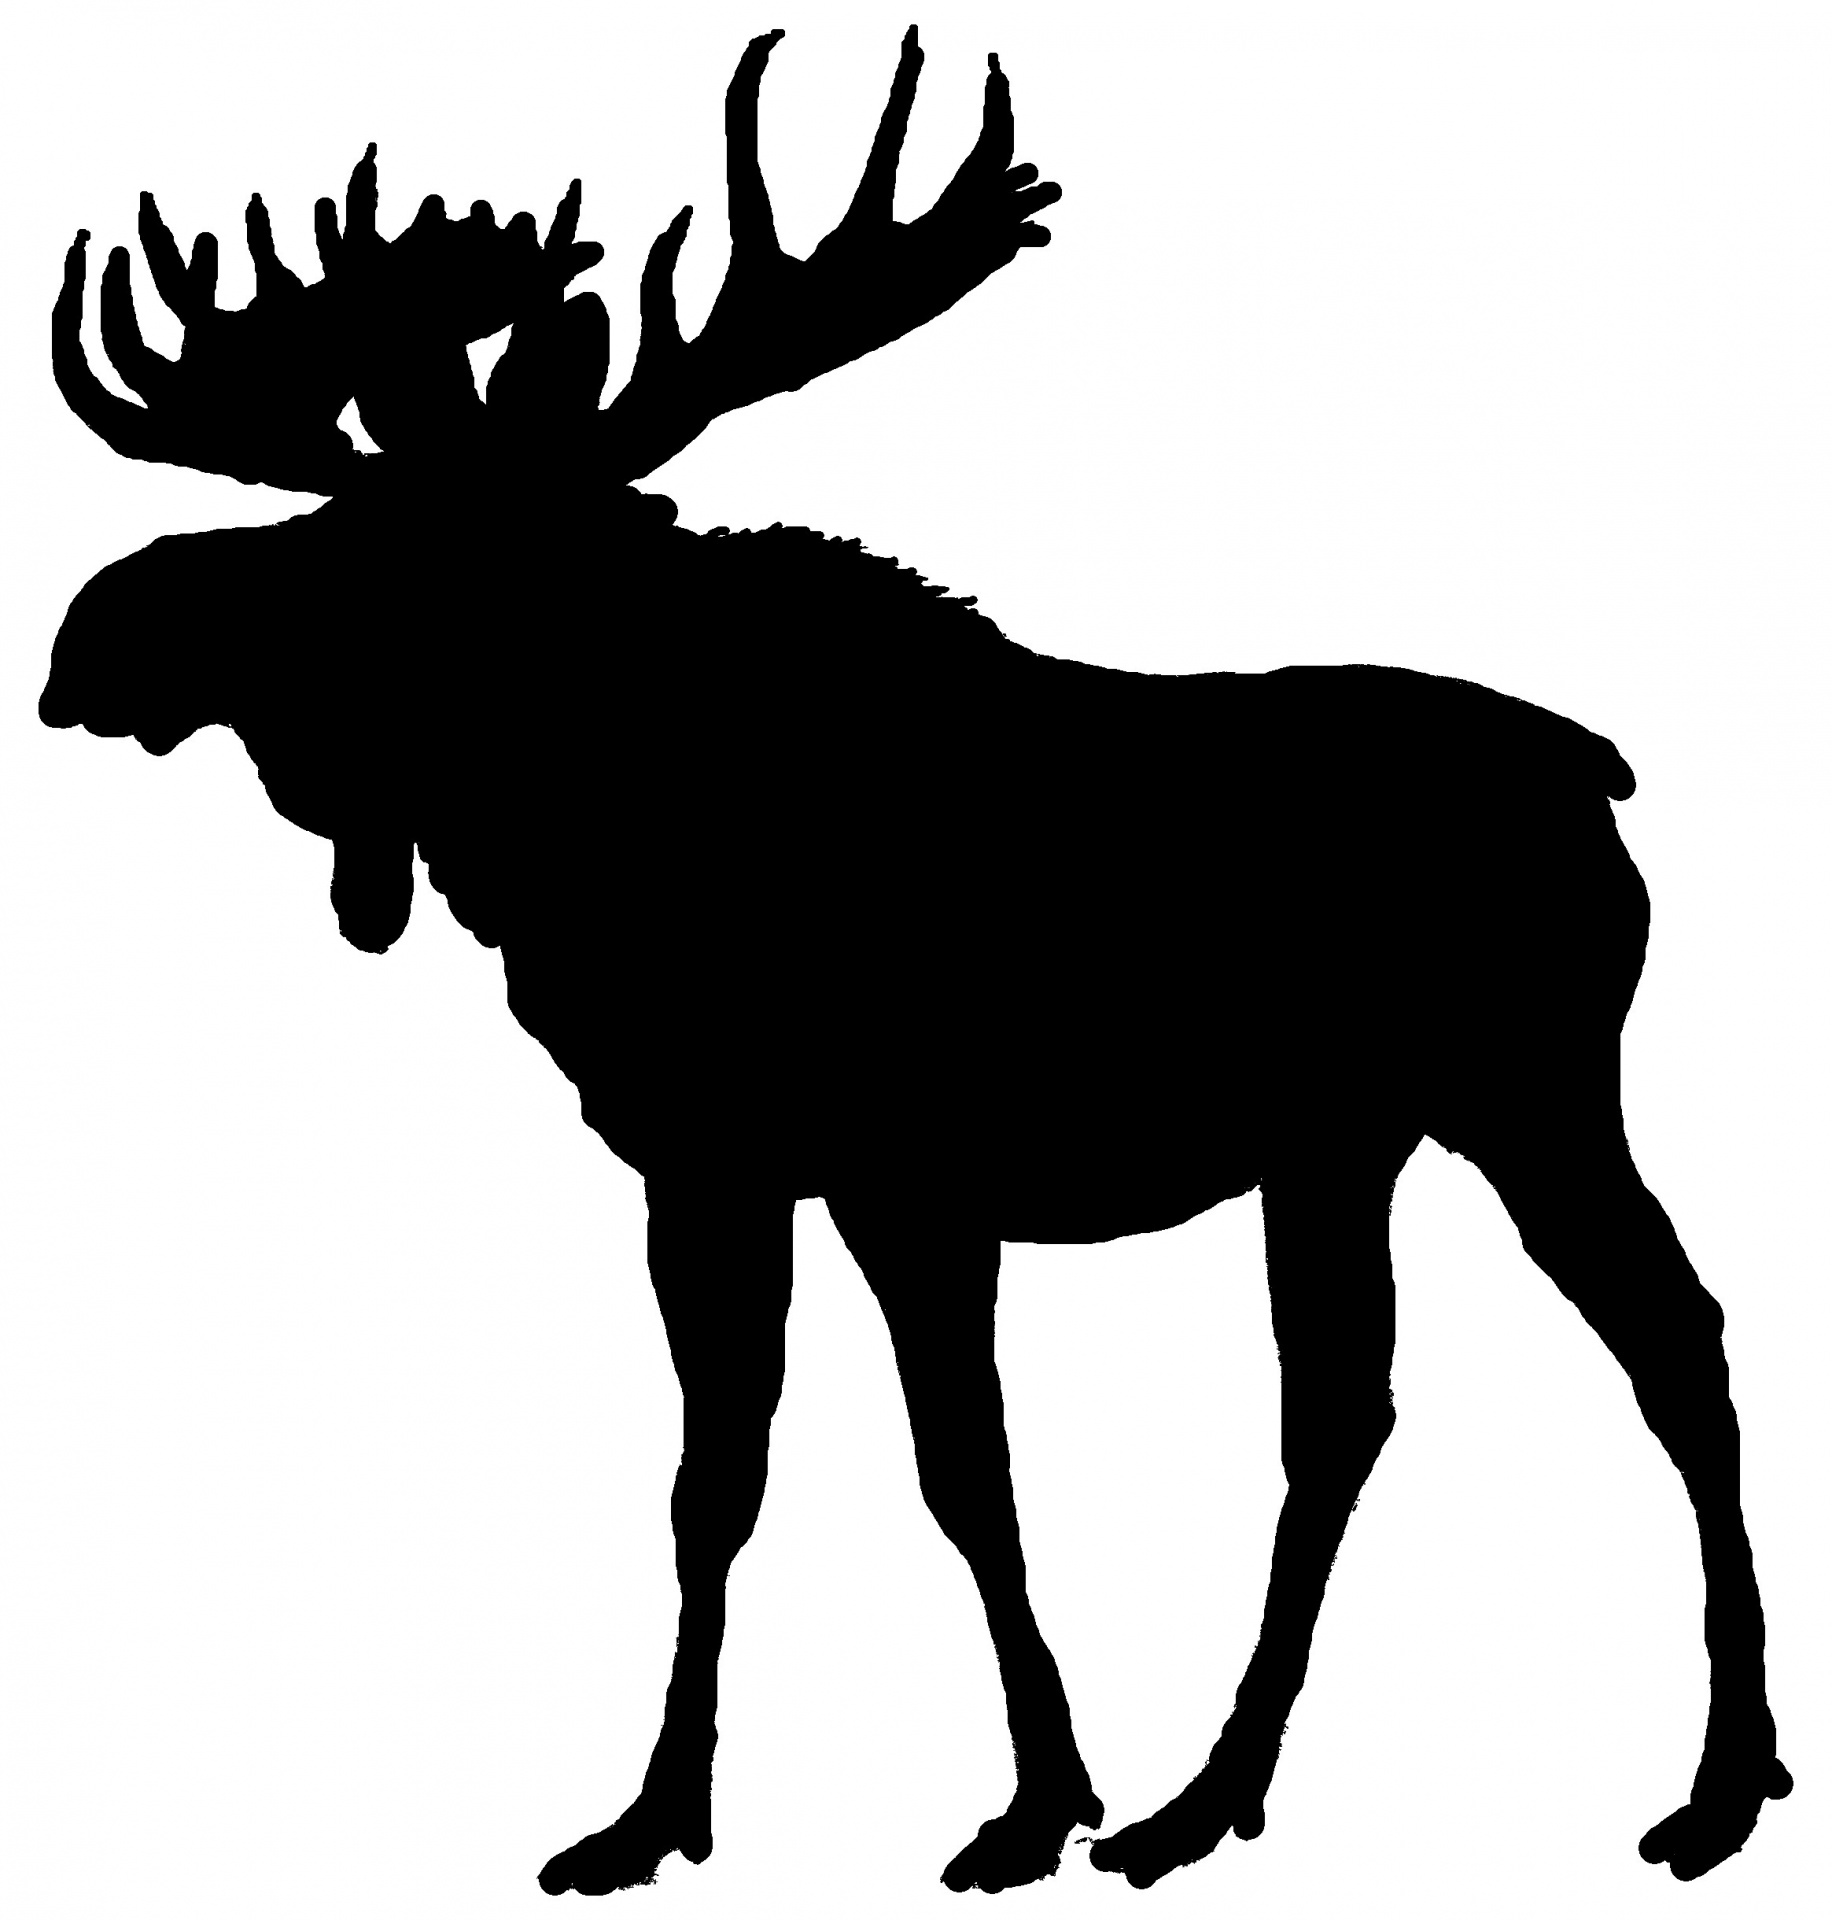 Maine new england wildlife. Moose clipart moose outline